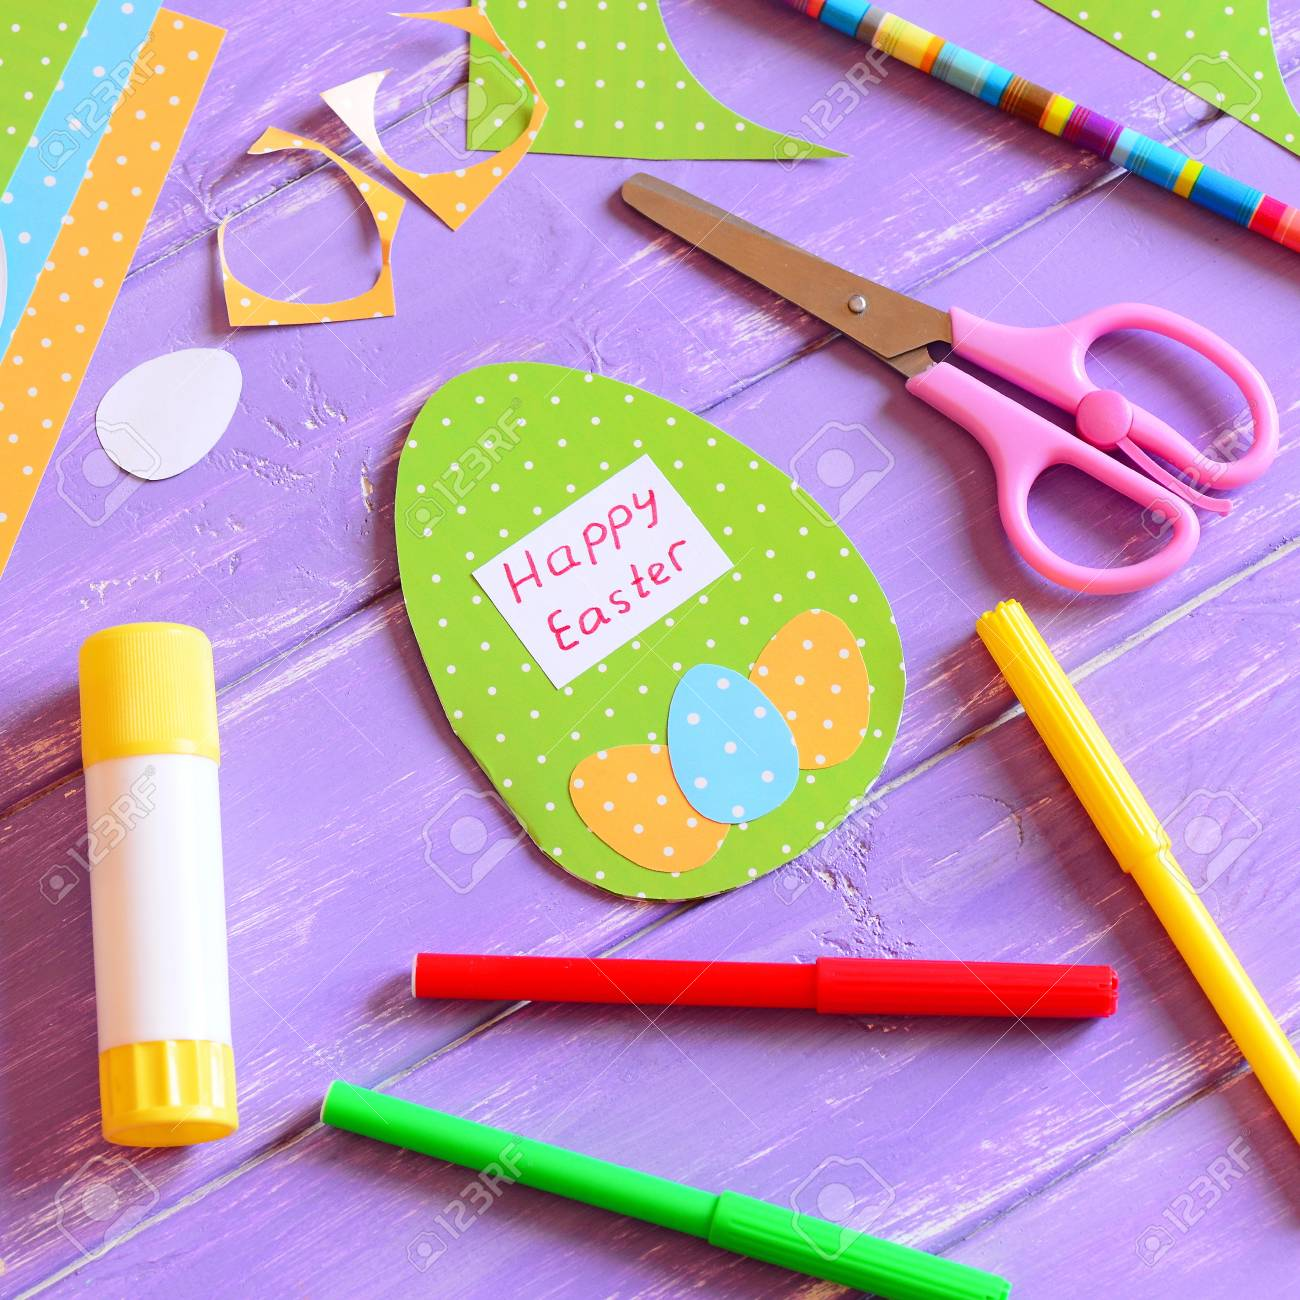 Happy easter card in egg shape materials and tools to create happy easter card in egg shape materials and tools to create easter paper greeting card m4hsunfo